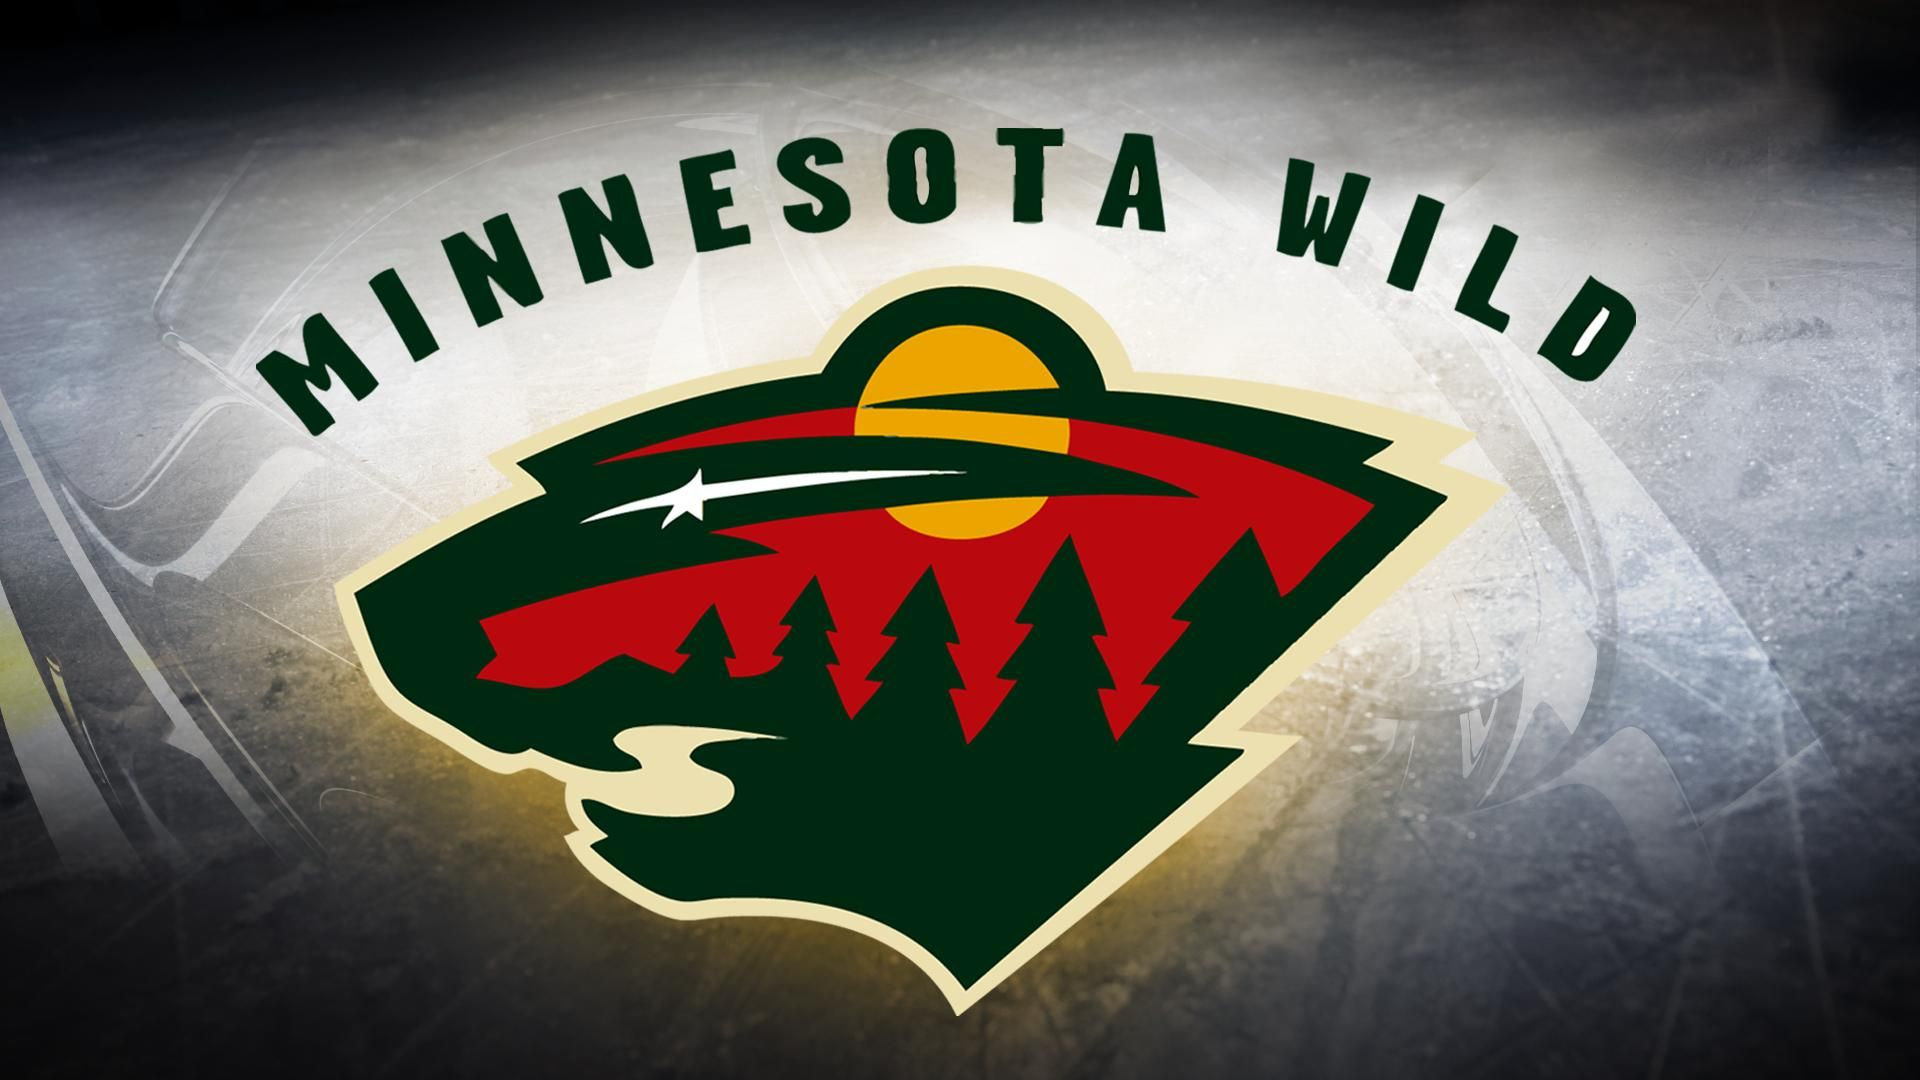 * Make Great Savings In The Minnesota Wild Gear Sale